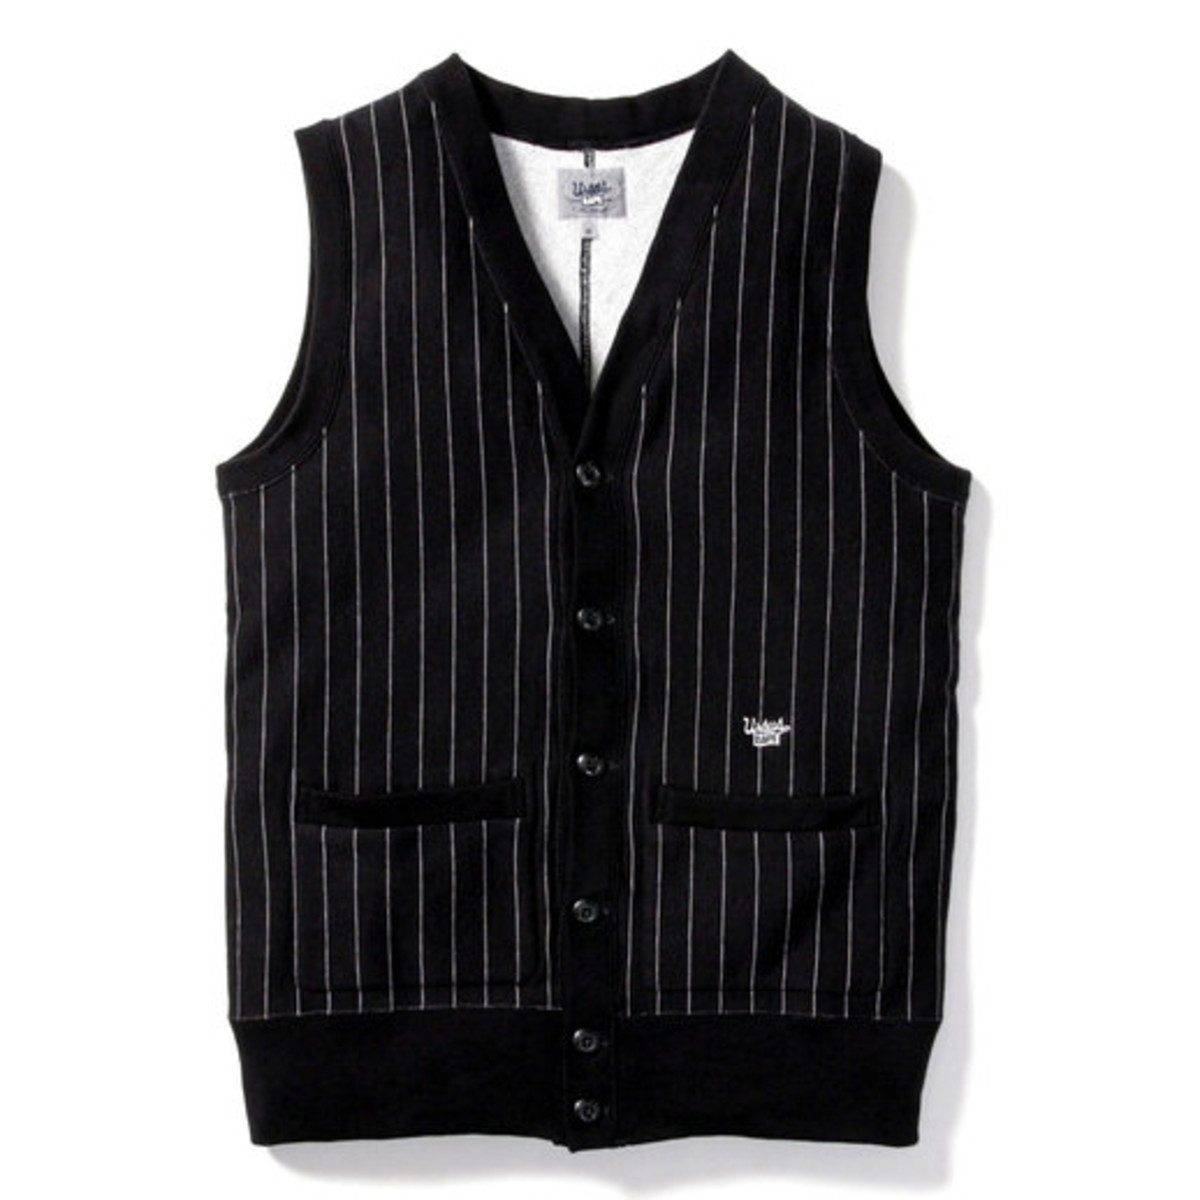 ursus-bape-cotton-vest-02